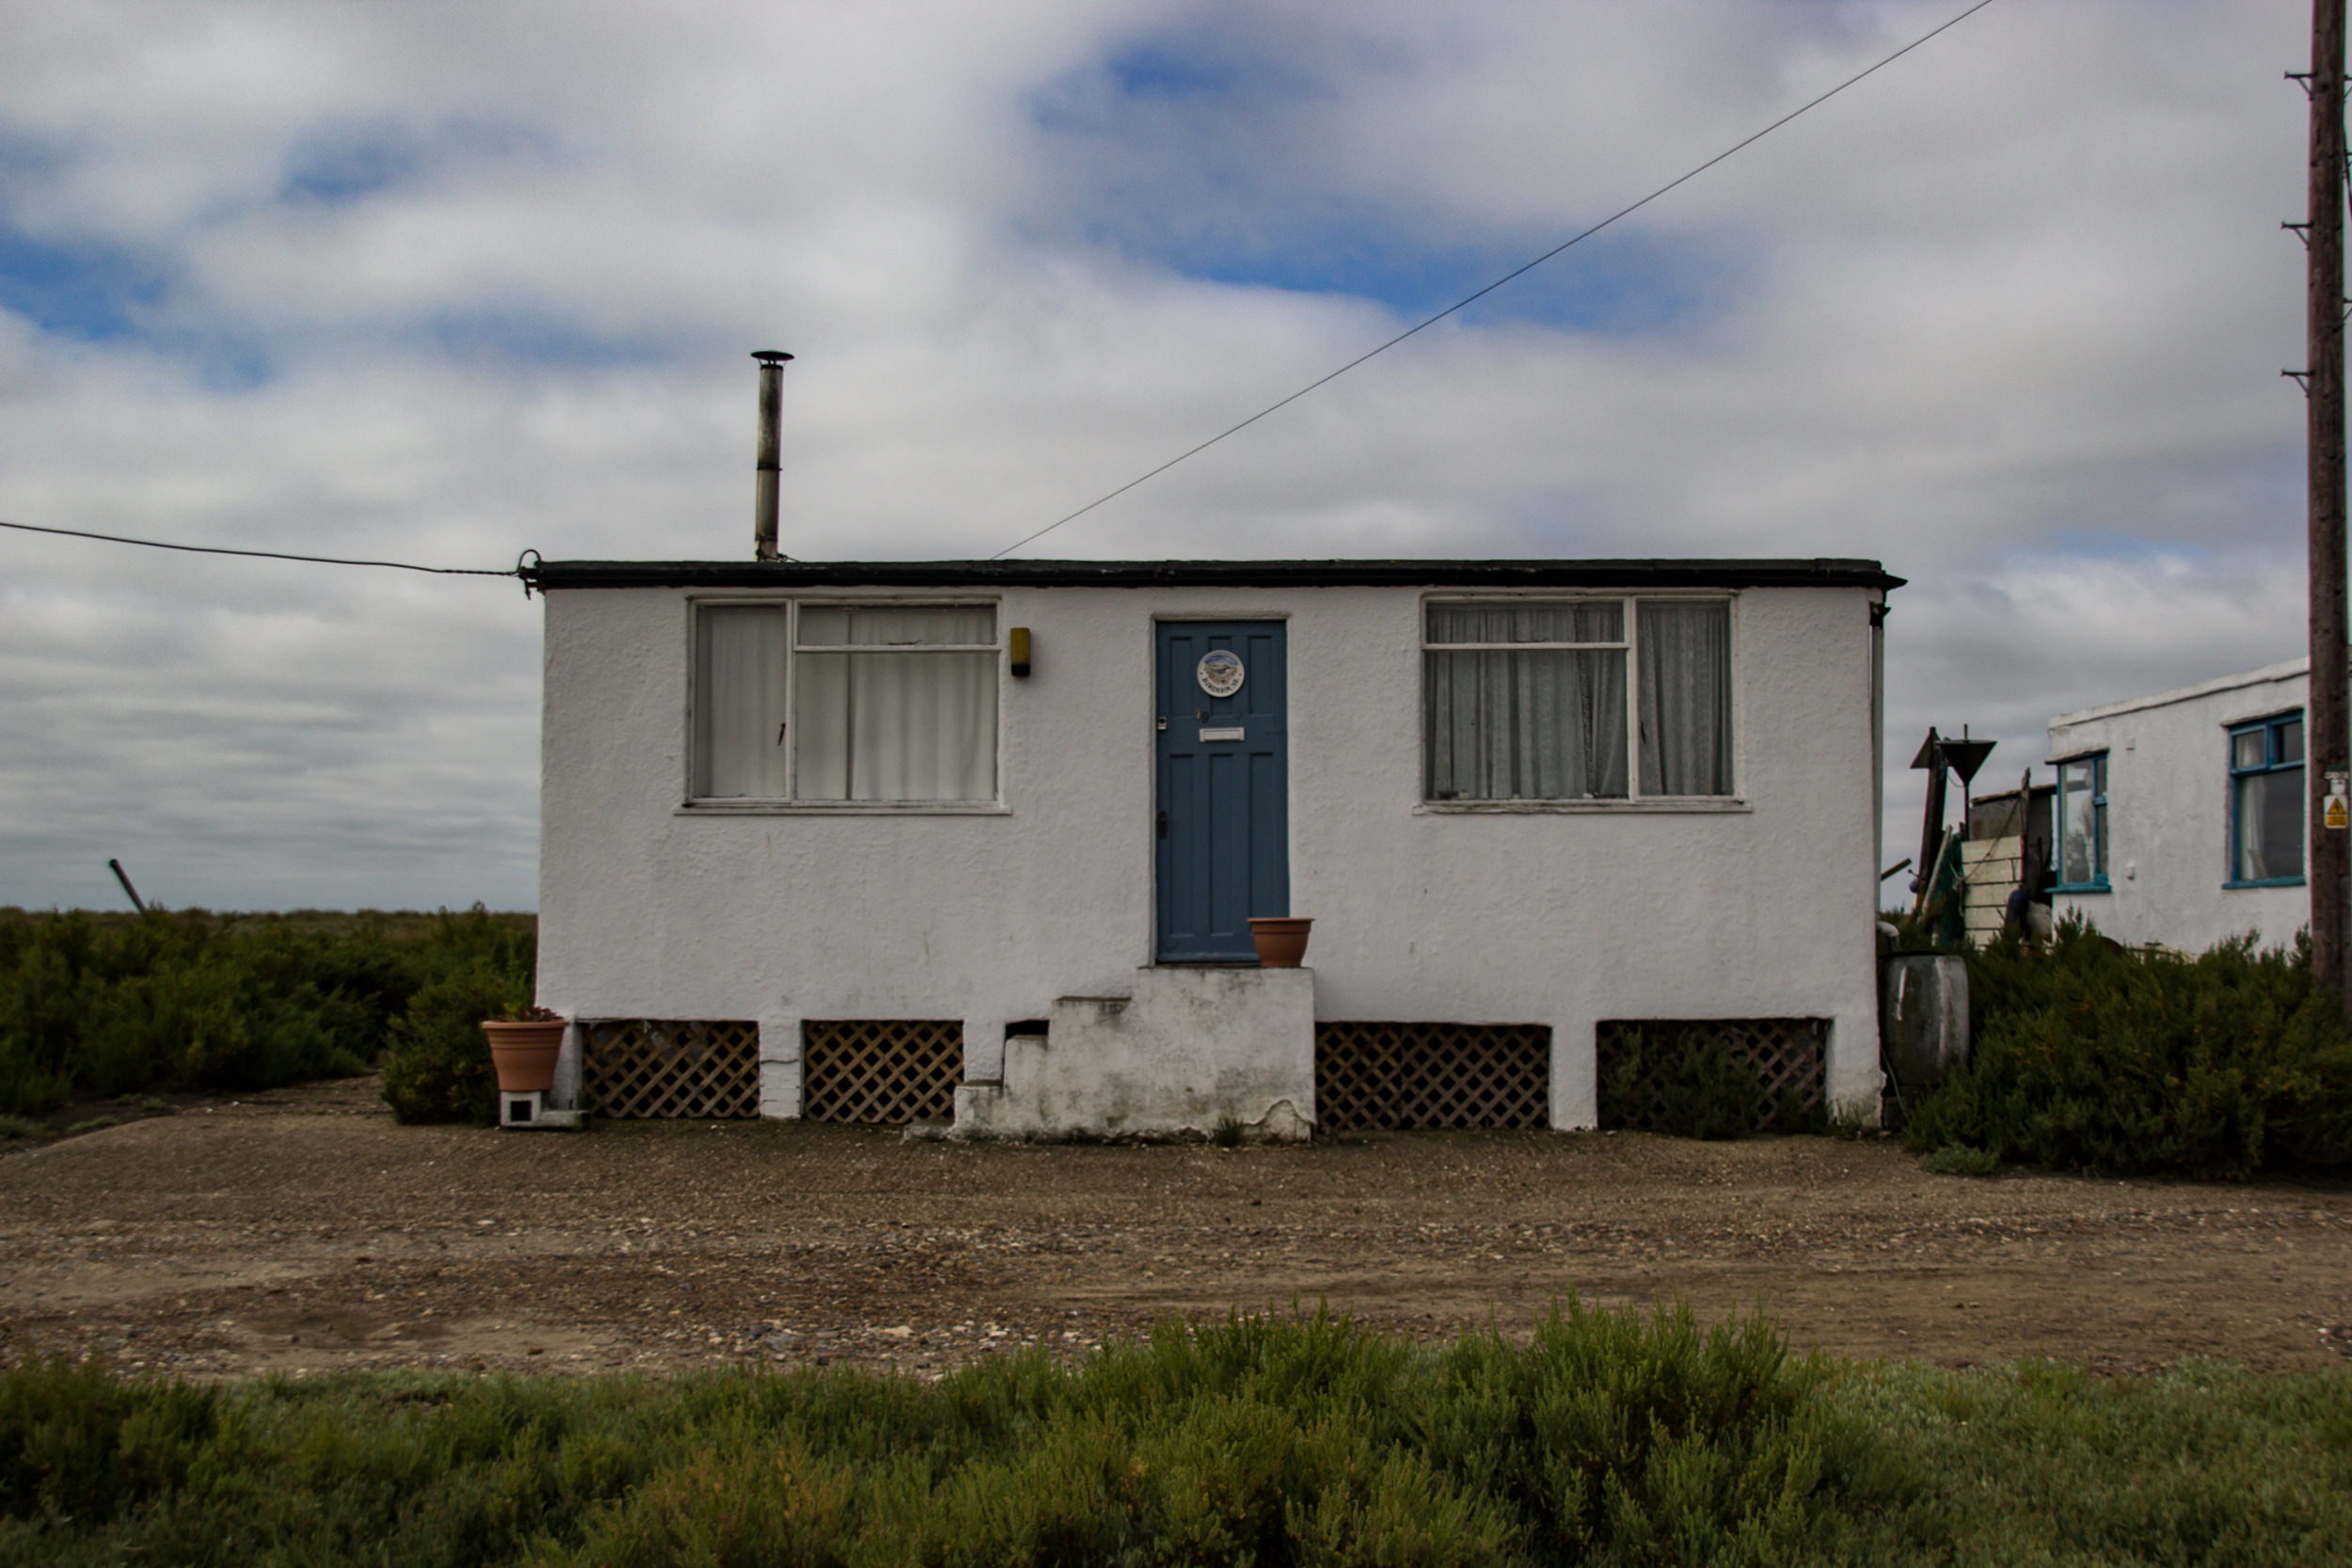 Lee-over-Sands, Saint Osyth Clacton